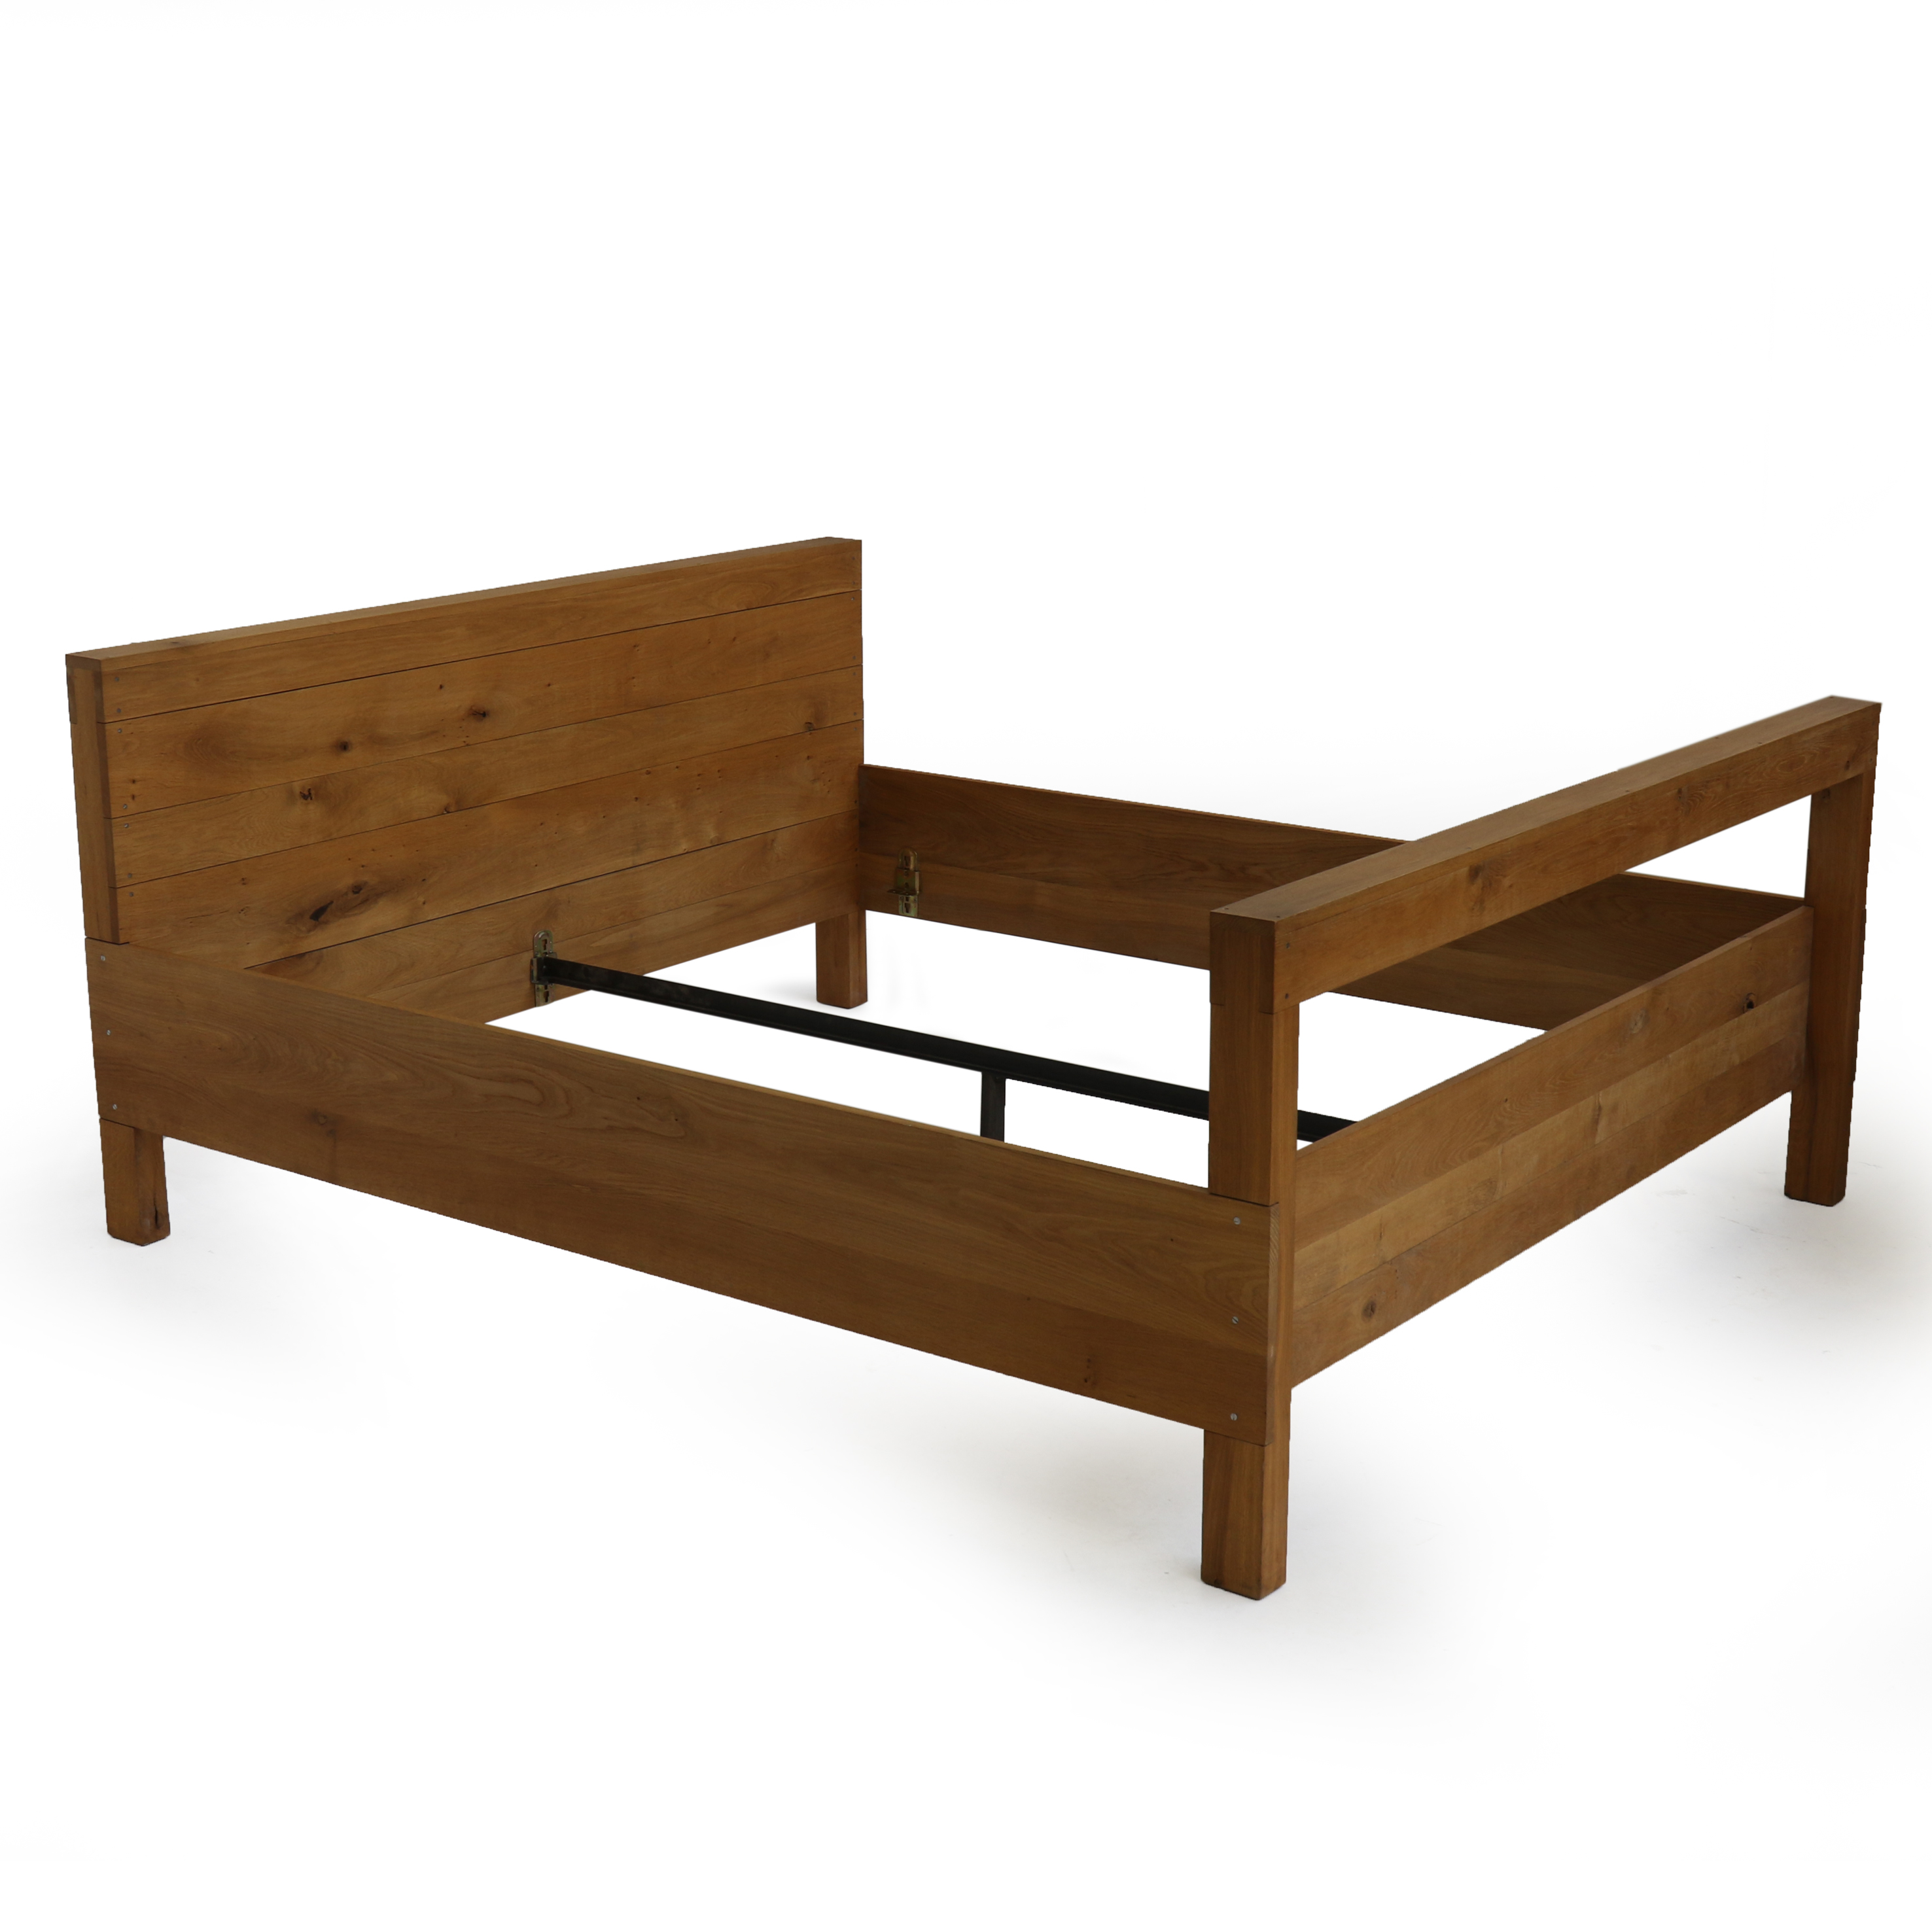 Sjon Bedden Slaapkamer Beds Product Categories Piet Hein Eek